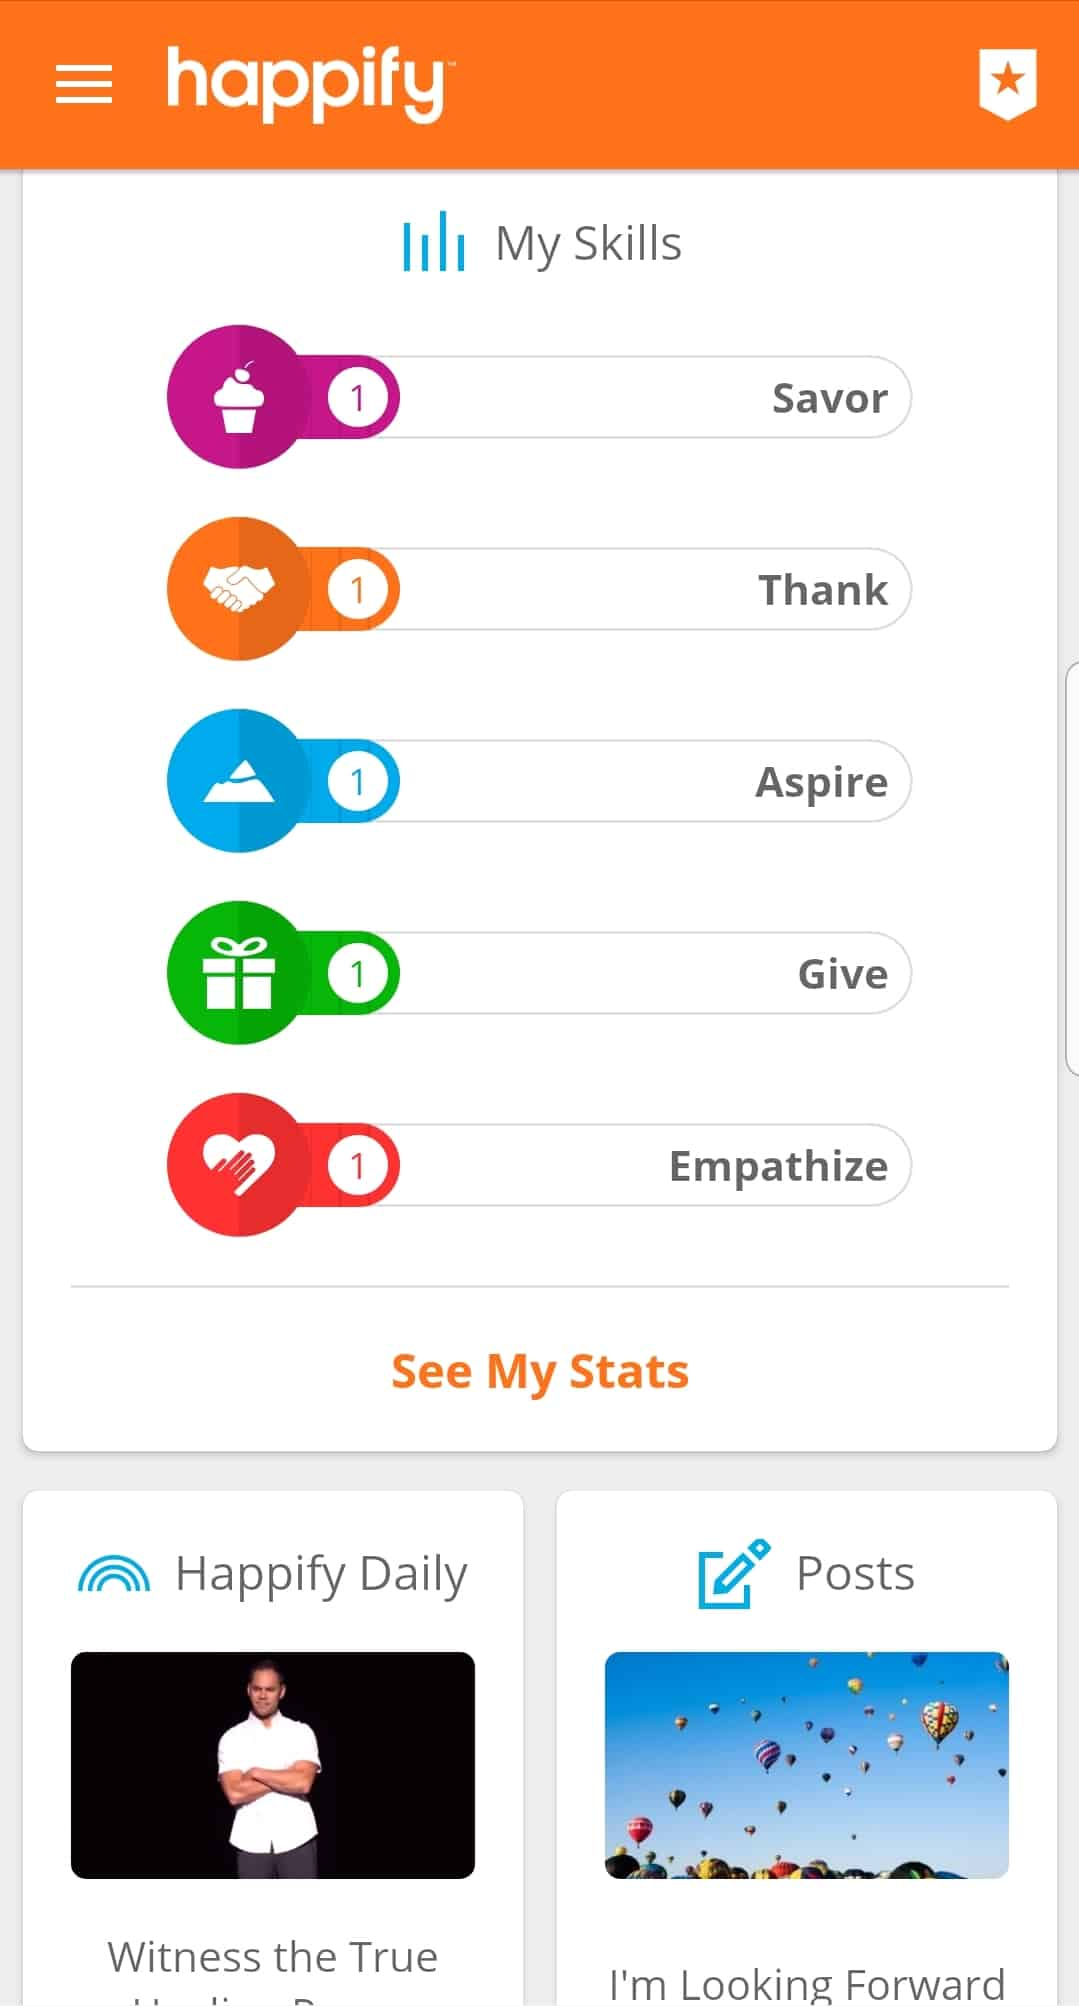 Happify interface page with skills and daily meditation